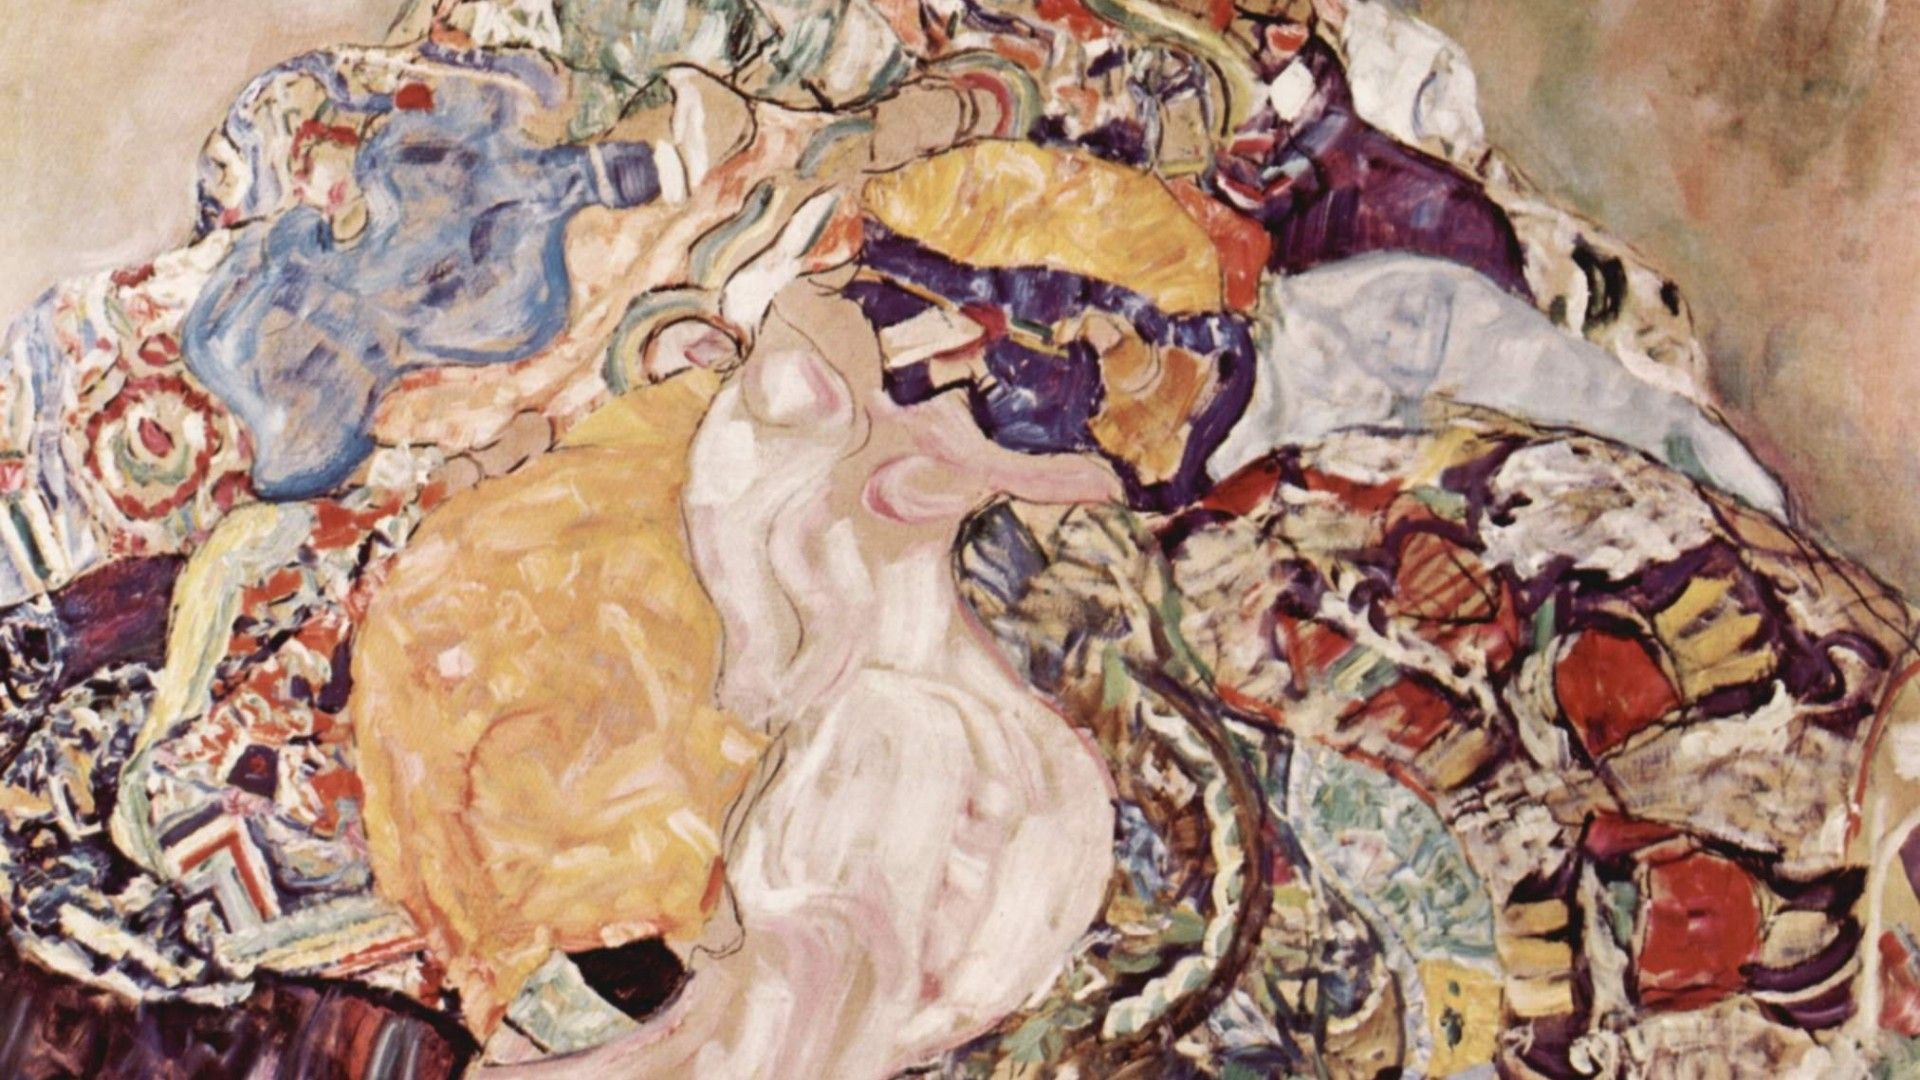 1920x1080 Painting of Gustav Klimt - Mess wallpapers and images - wallpapers ...